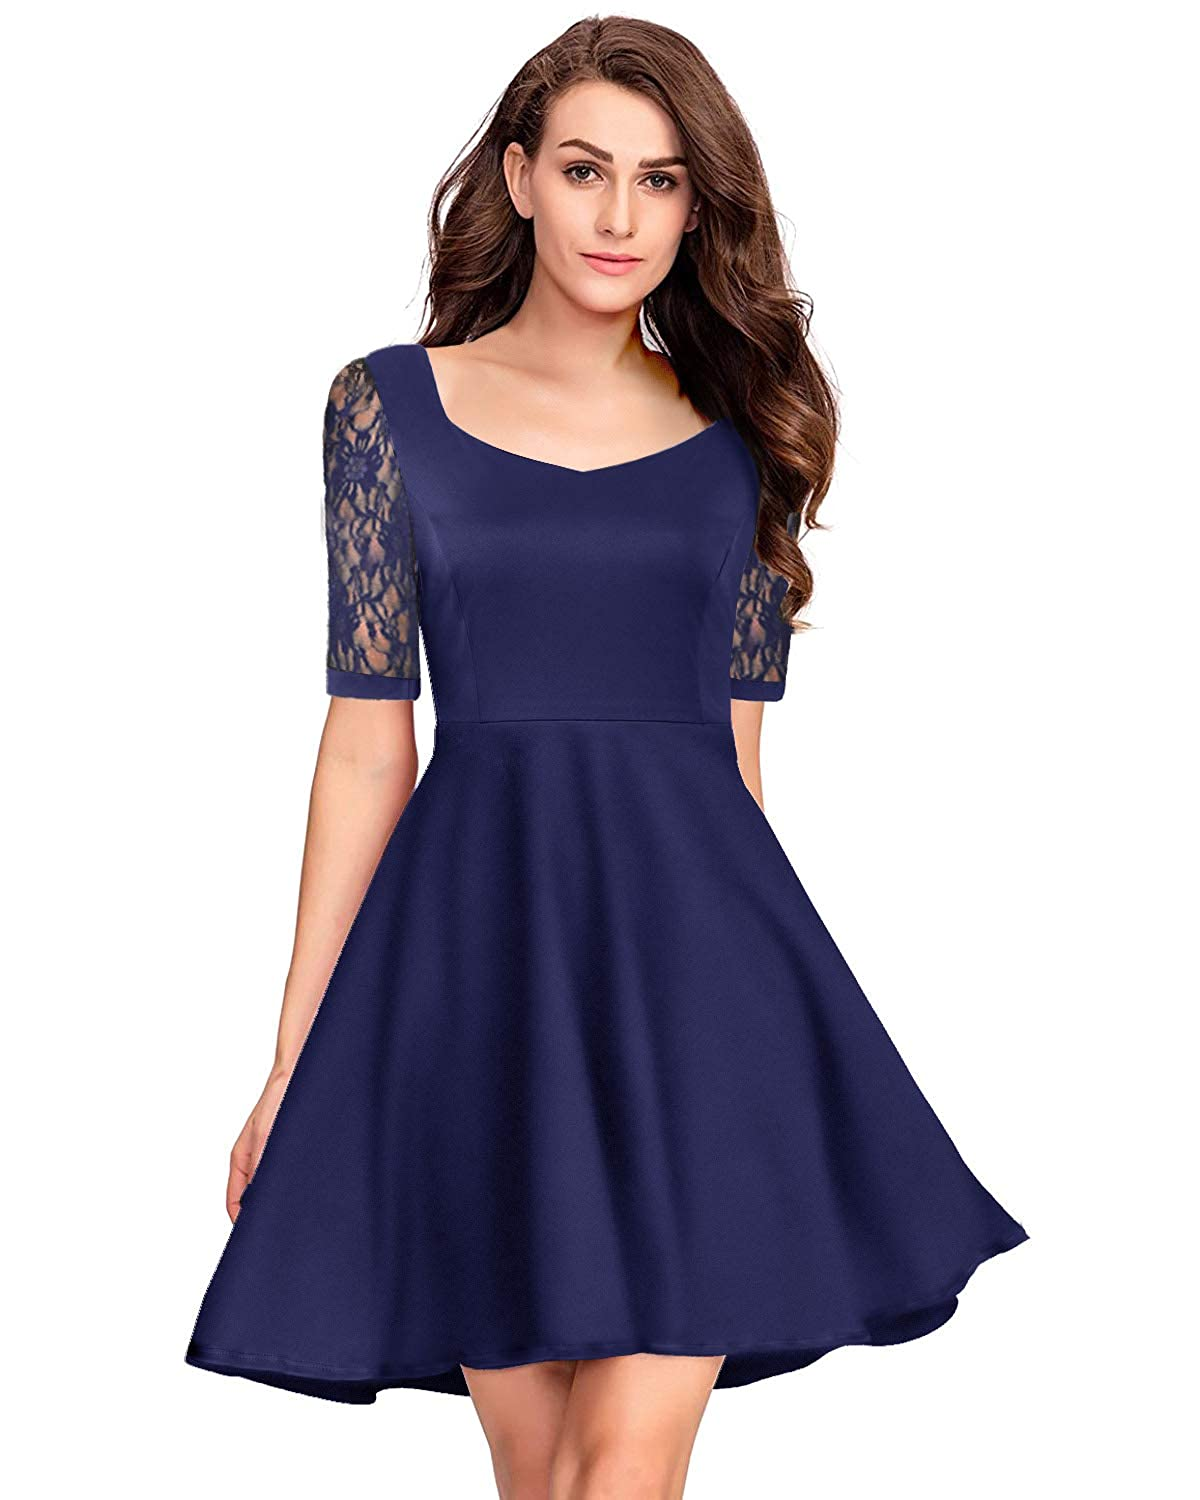 Navy bluee Pinup Fashion Women's Casual Lace Half Sleeves Dress Work Cocktail Party Swing Dresses